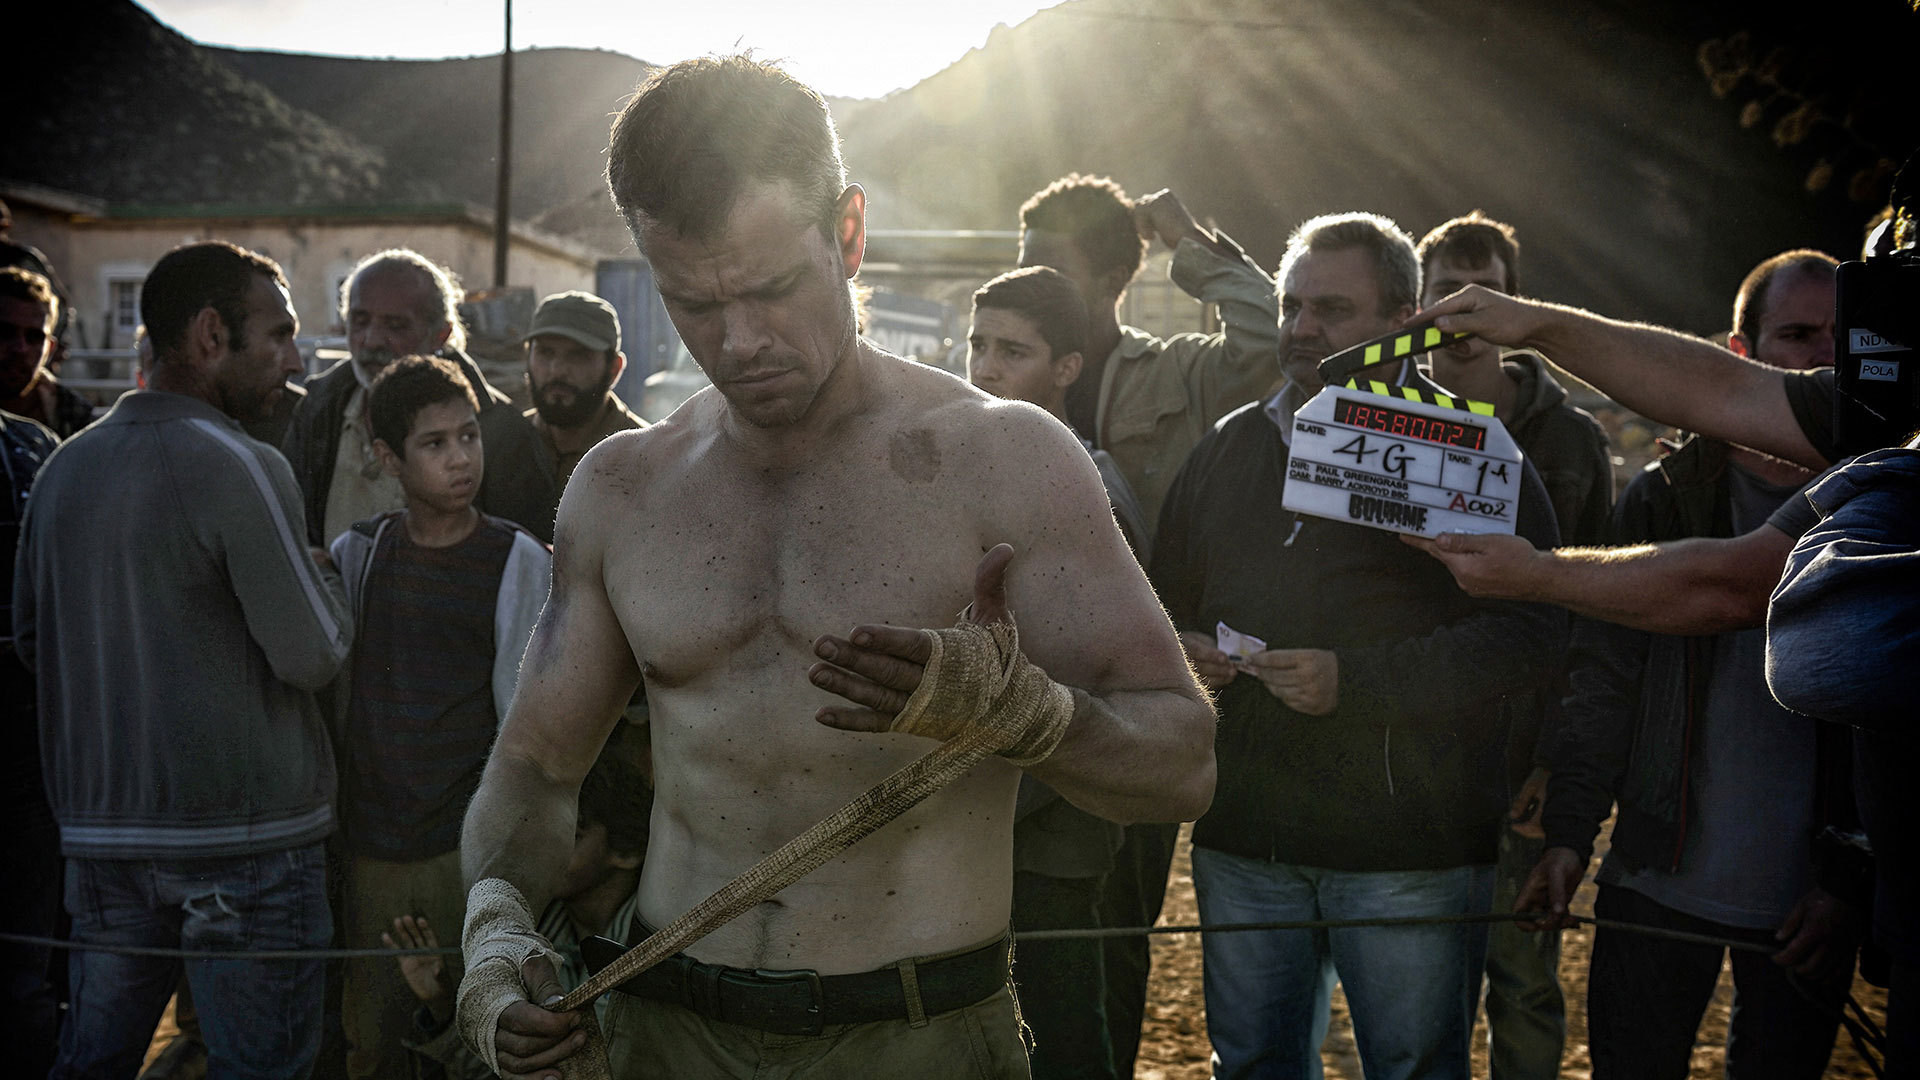 Jason Bourne Behind the Scenes Photos & Tech Specs